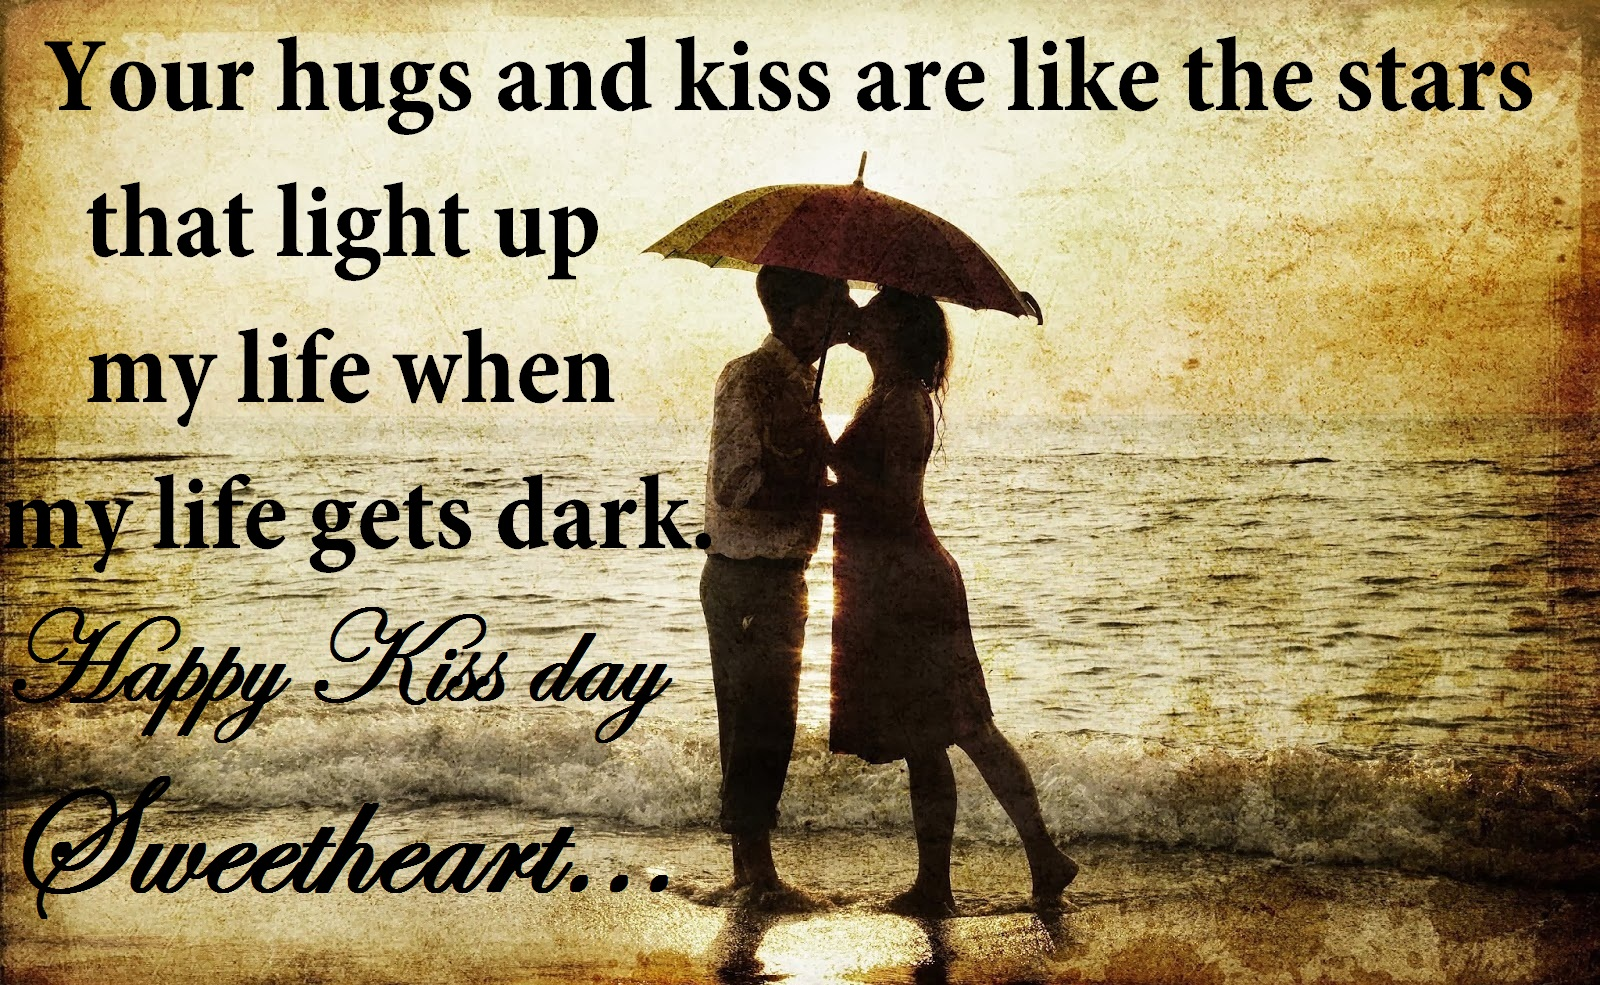 Romantic Lip Kiss Hd Wallpaper Top 30 Best Kiss Day Status For Whatsapp Amp Messages For